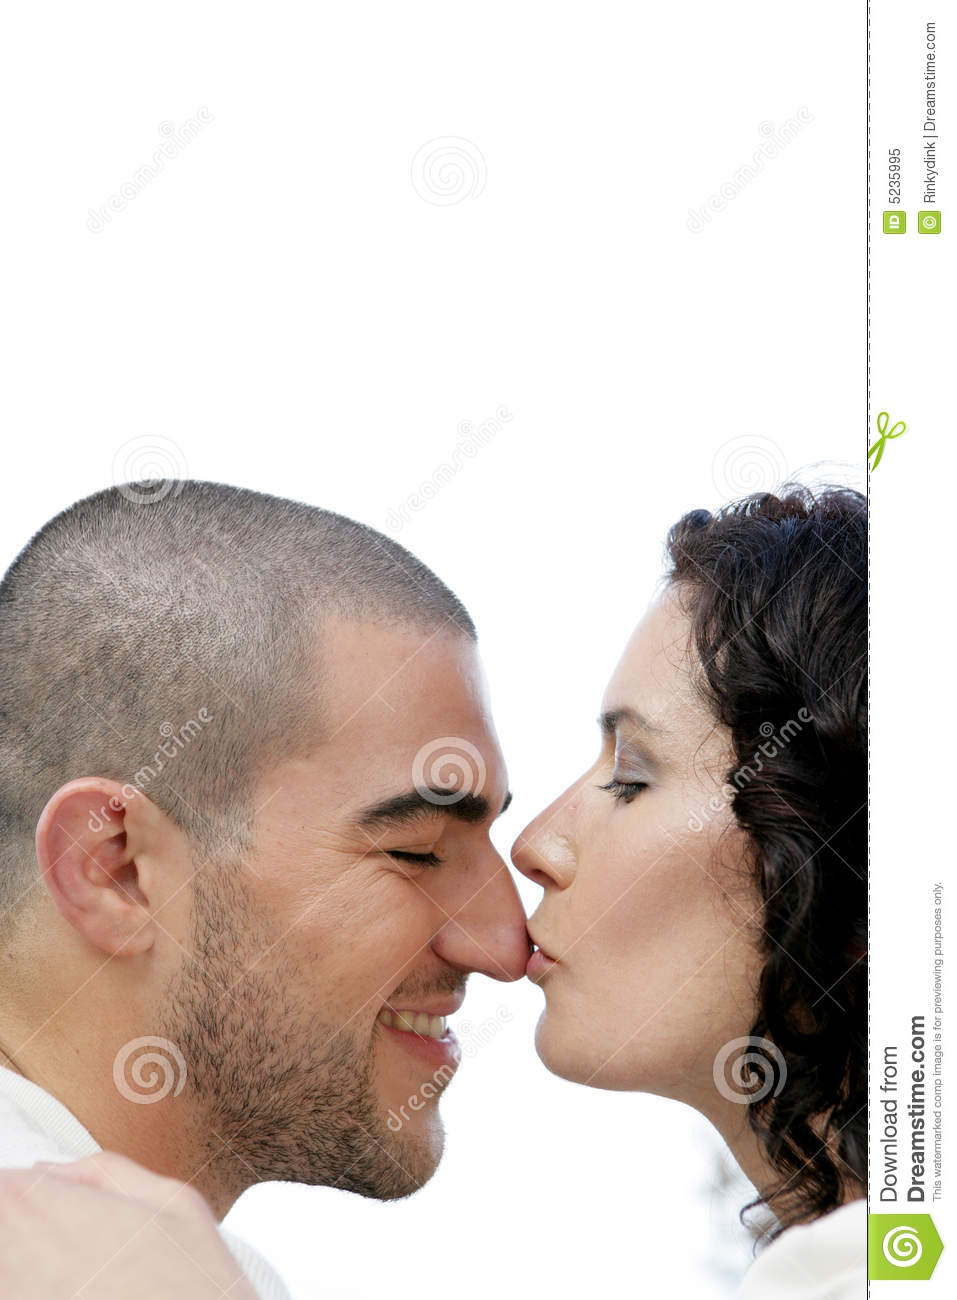 Kissing On The Nose Royalty Free Stock Photo - Image: 5235995